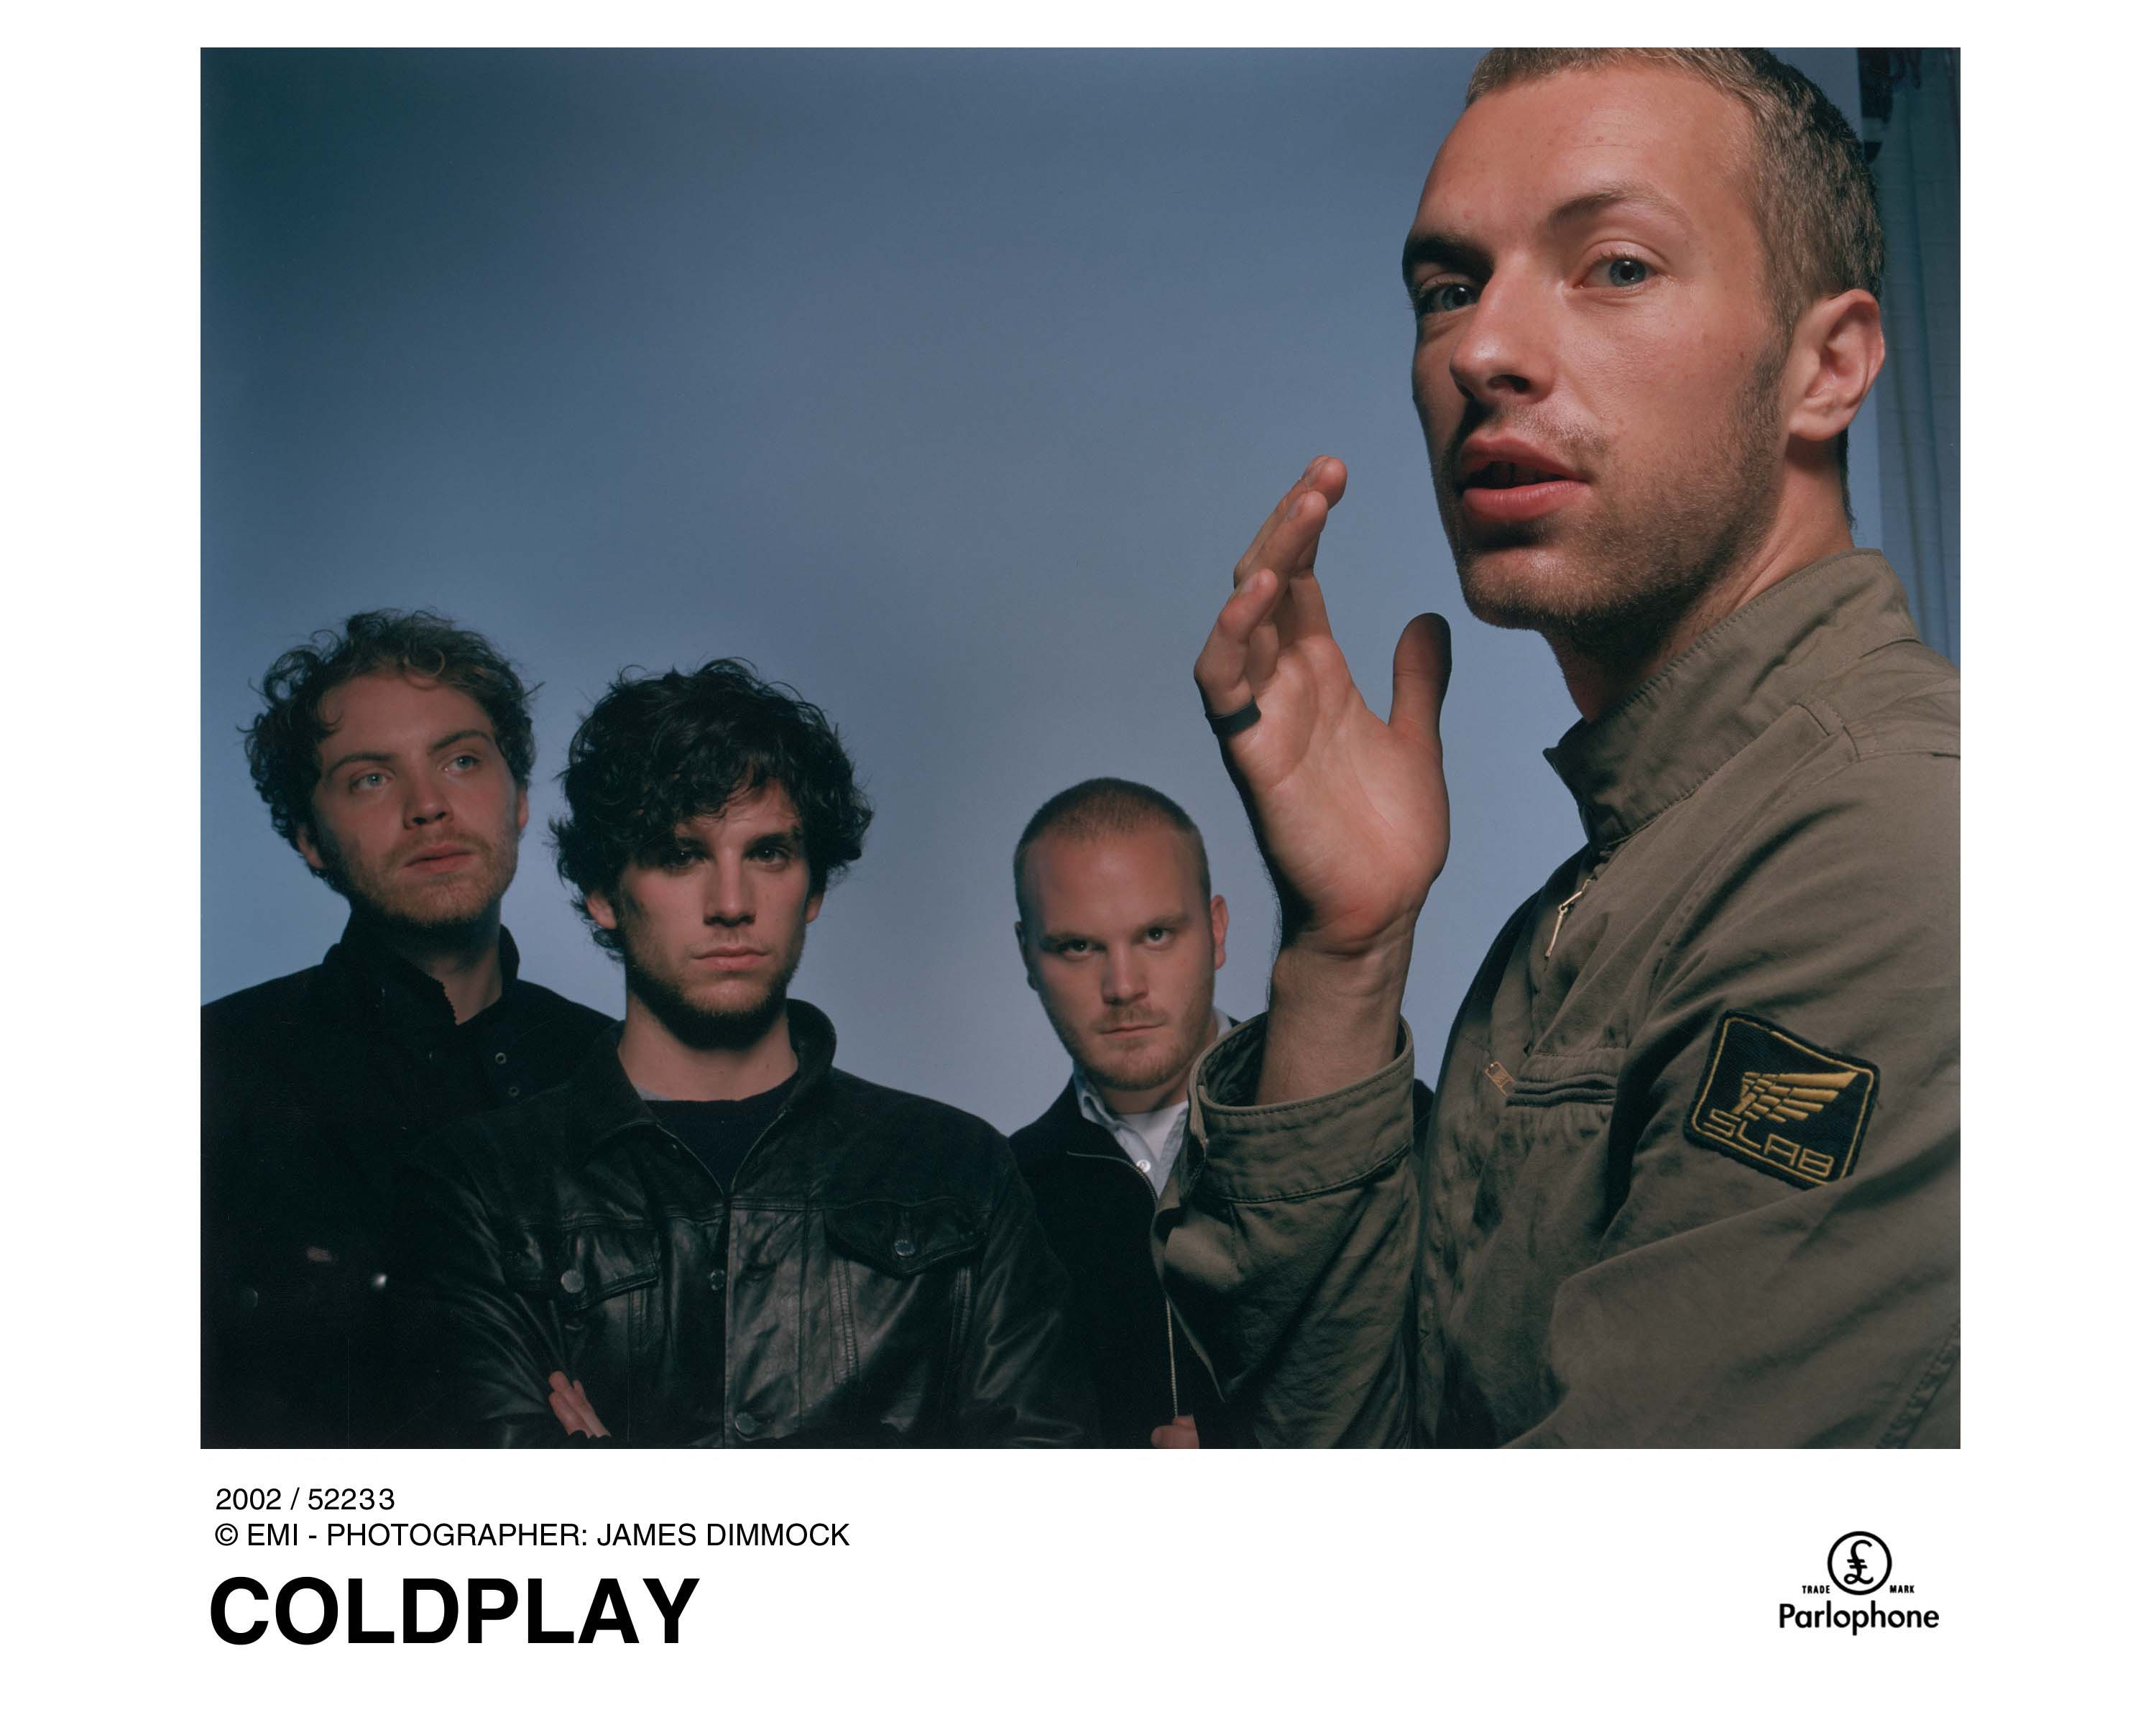 CLICK HERE - COLDPLAY: The Light of Music, Passion, and Development!